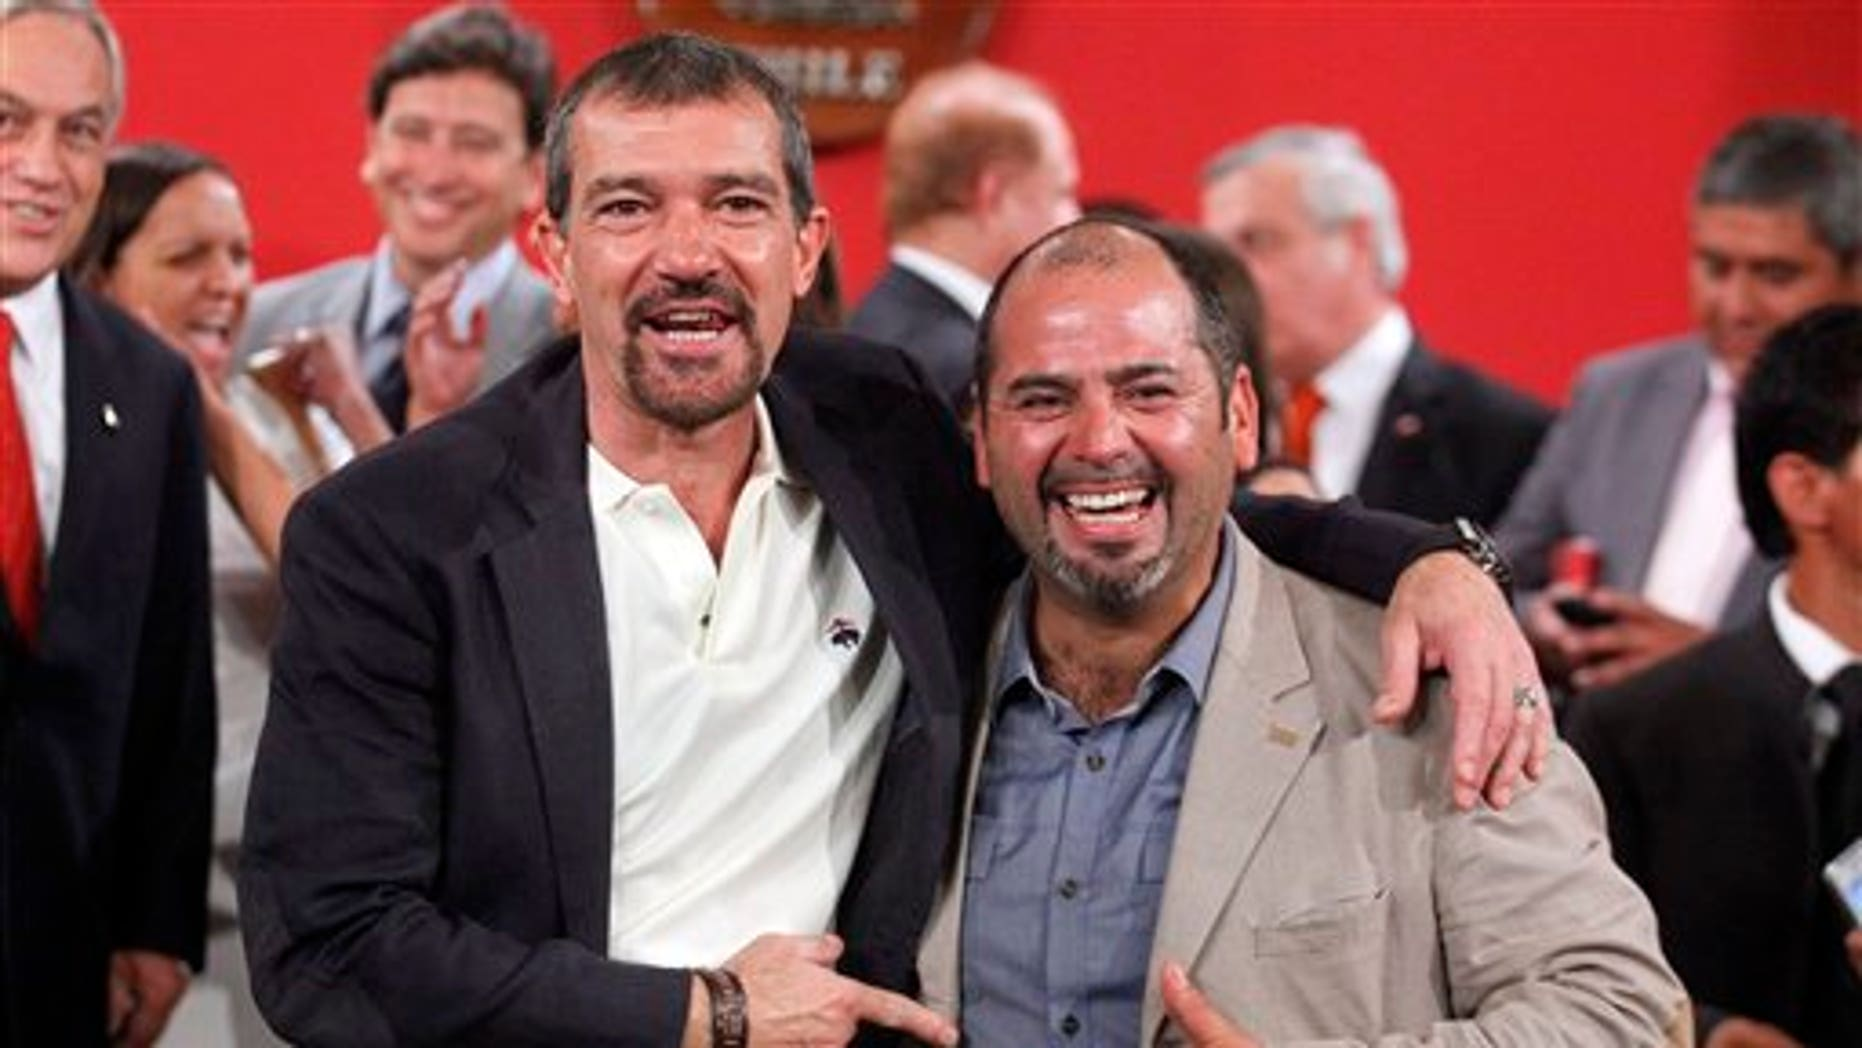 """The Spanish actor, Antonio Banderas, left, poses for photographers next to Mario Sepulveda, in Santiago, Chile, Friday Jan. 31, 2014. Sepulveda was one of the 33 miners who was trapped in a mine cave-in in Chile's Atacama desert in 2010. The Spanish star will play Sepulveda, who known as """"Super Mario,"""" became the public face of the miners. (AP Photo/Luis Hidalgo)"""